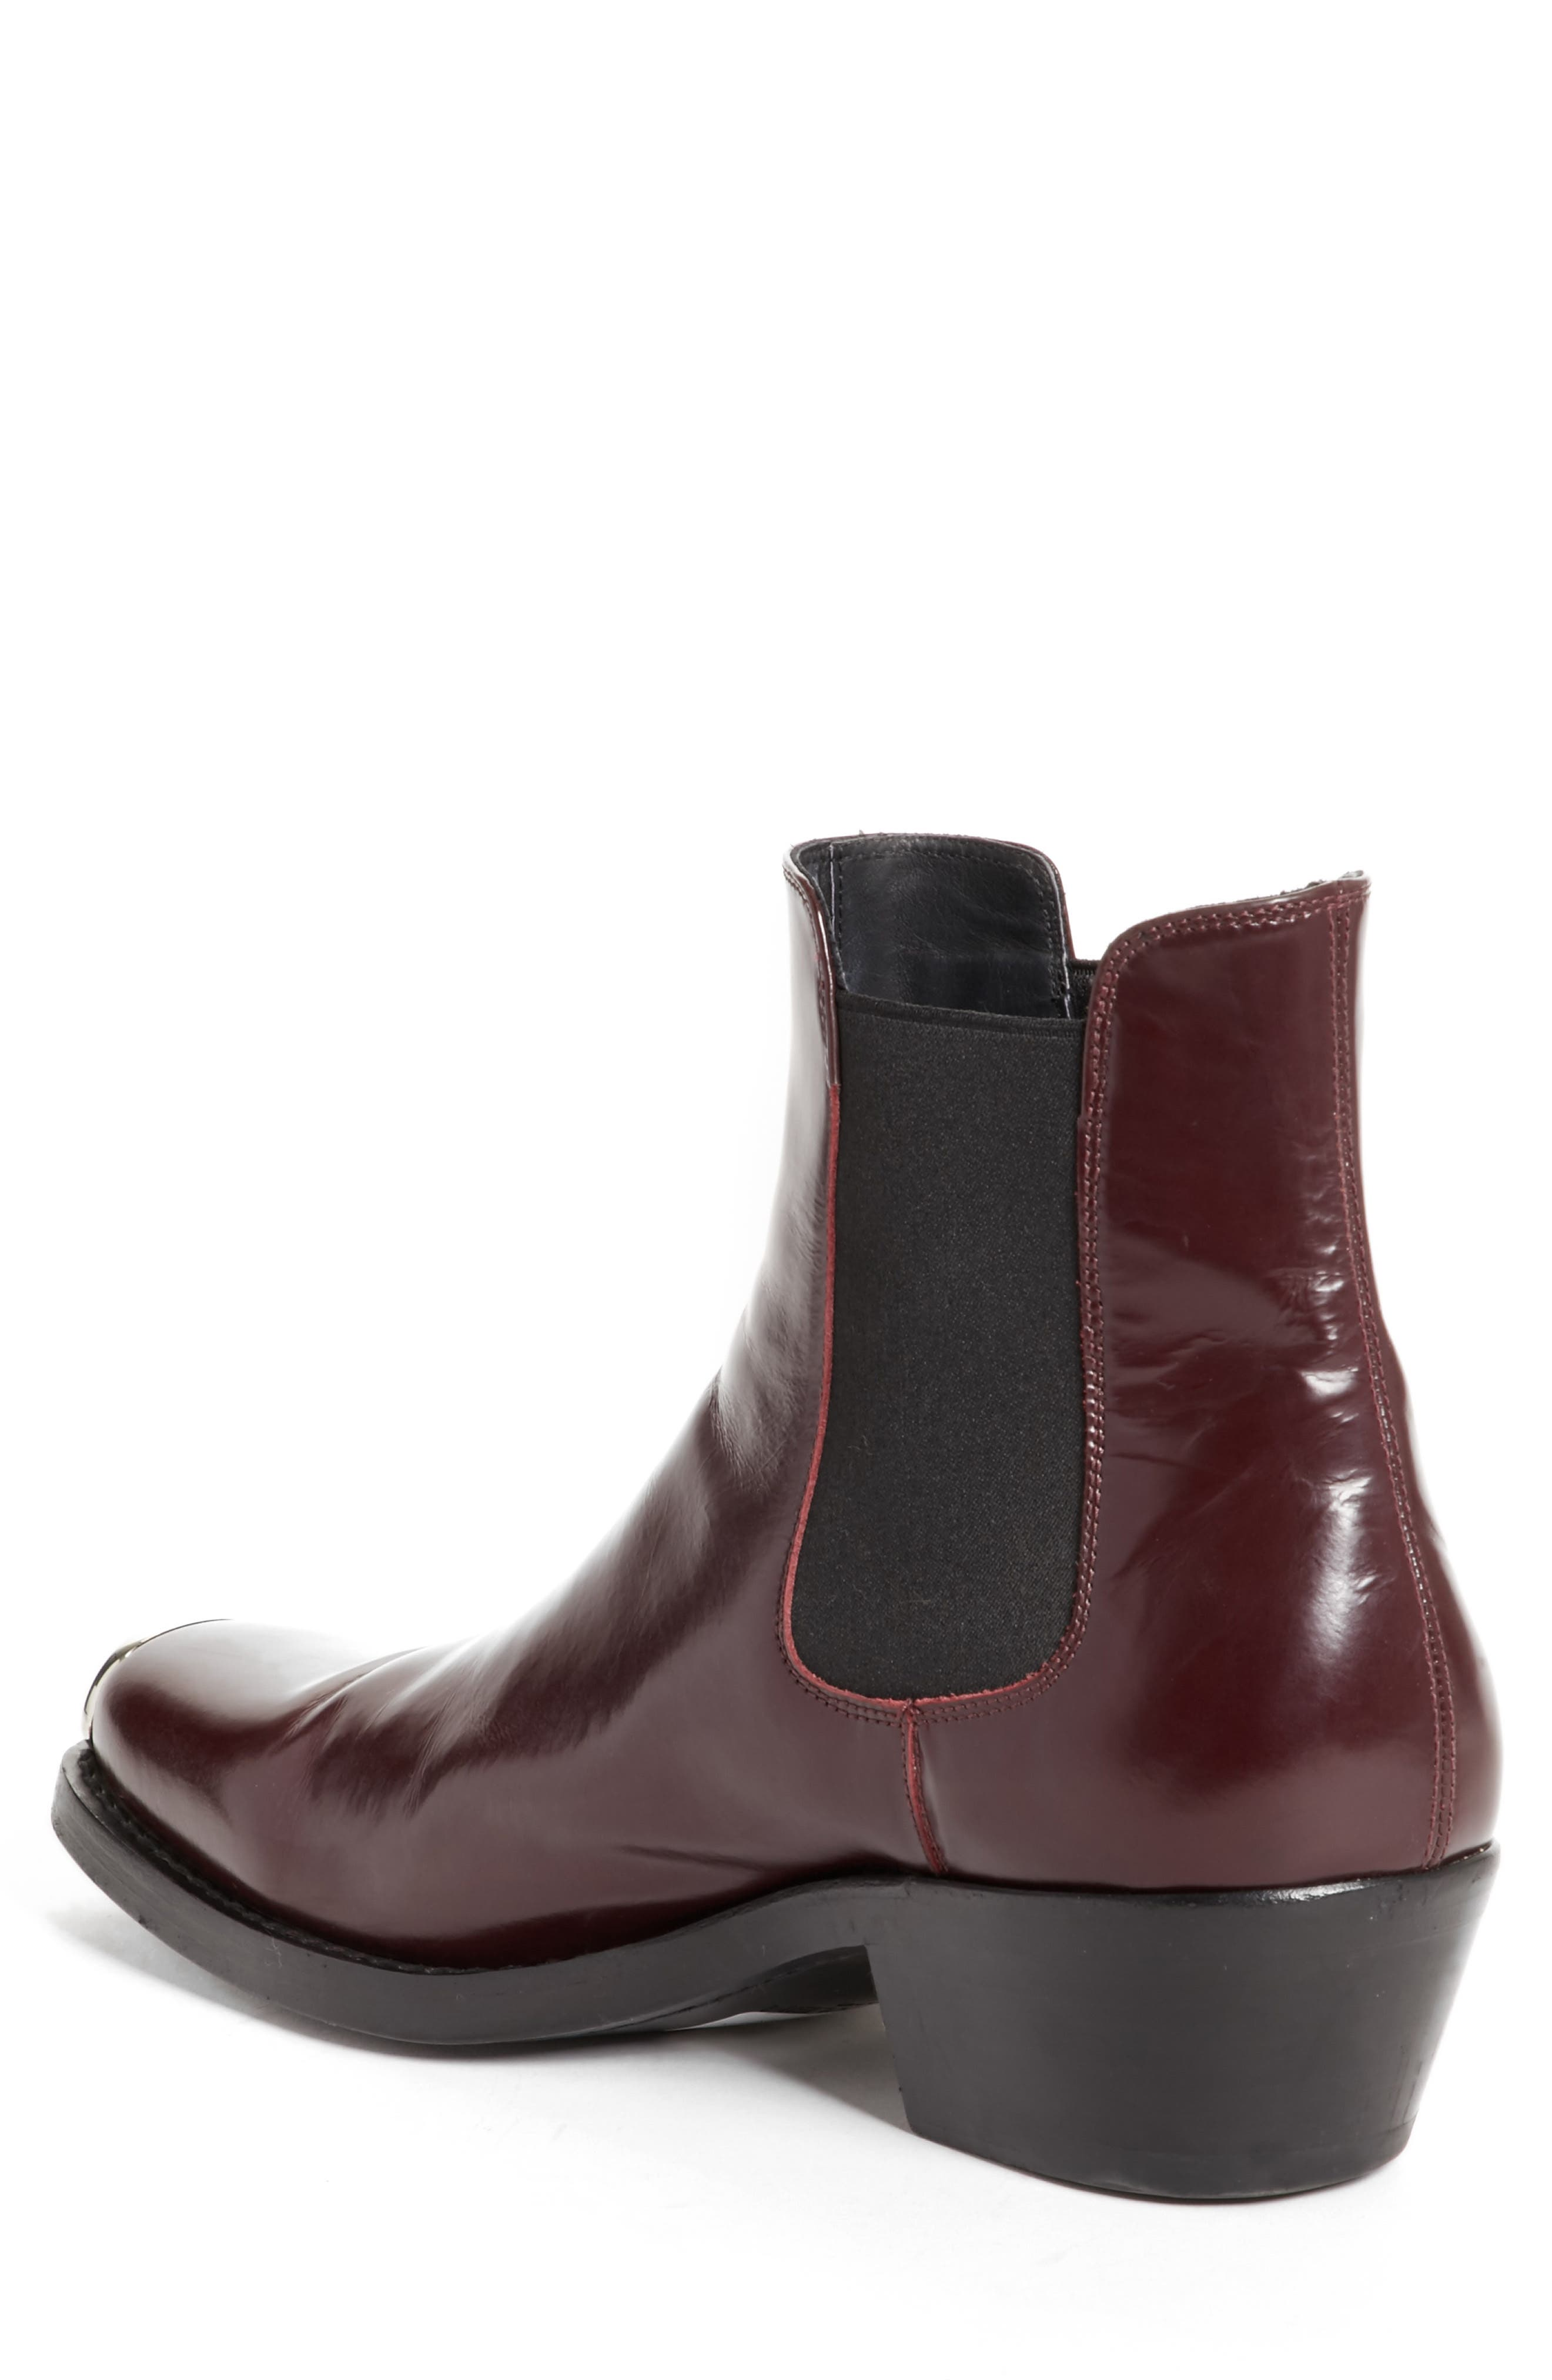 Chris Western Metal Tip Boot,                             Alternate thumbnail 2, color,                             Bordeaux Leather